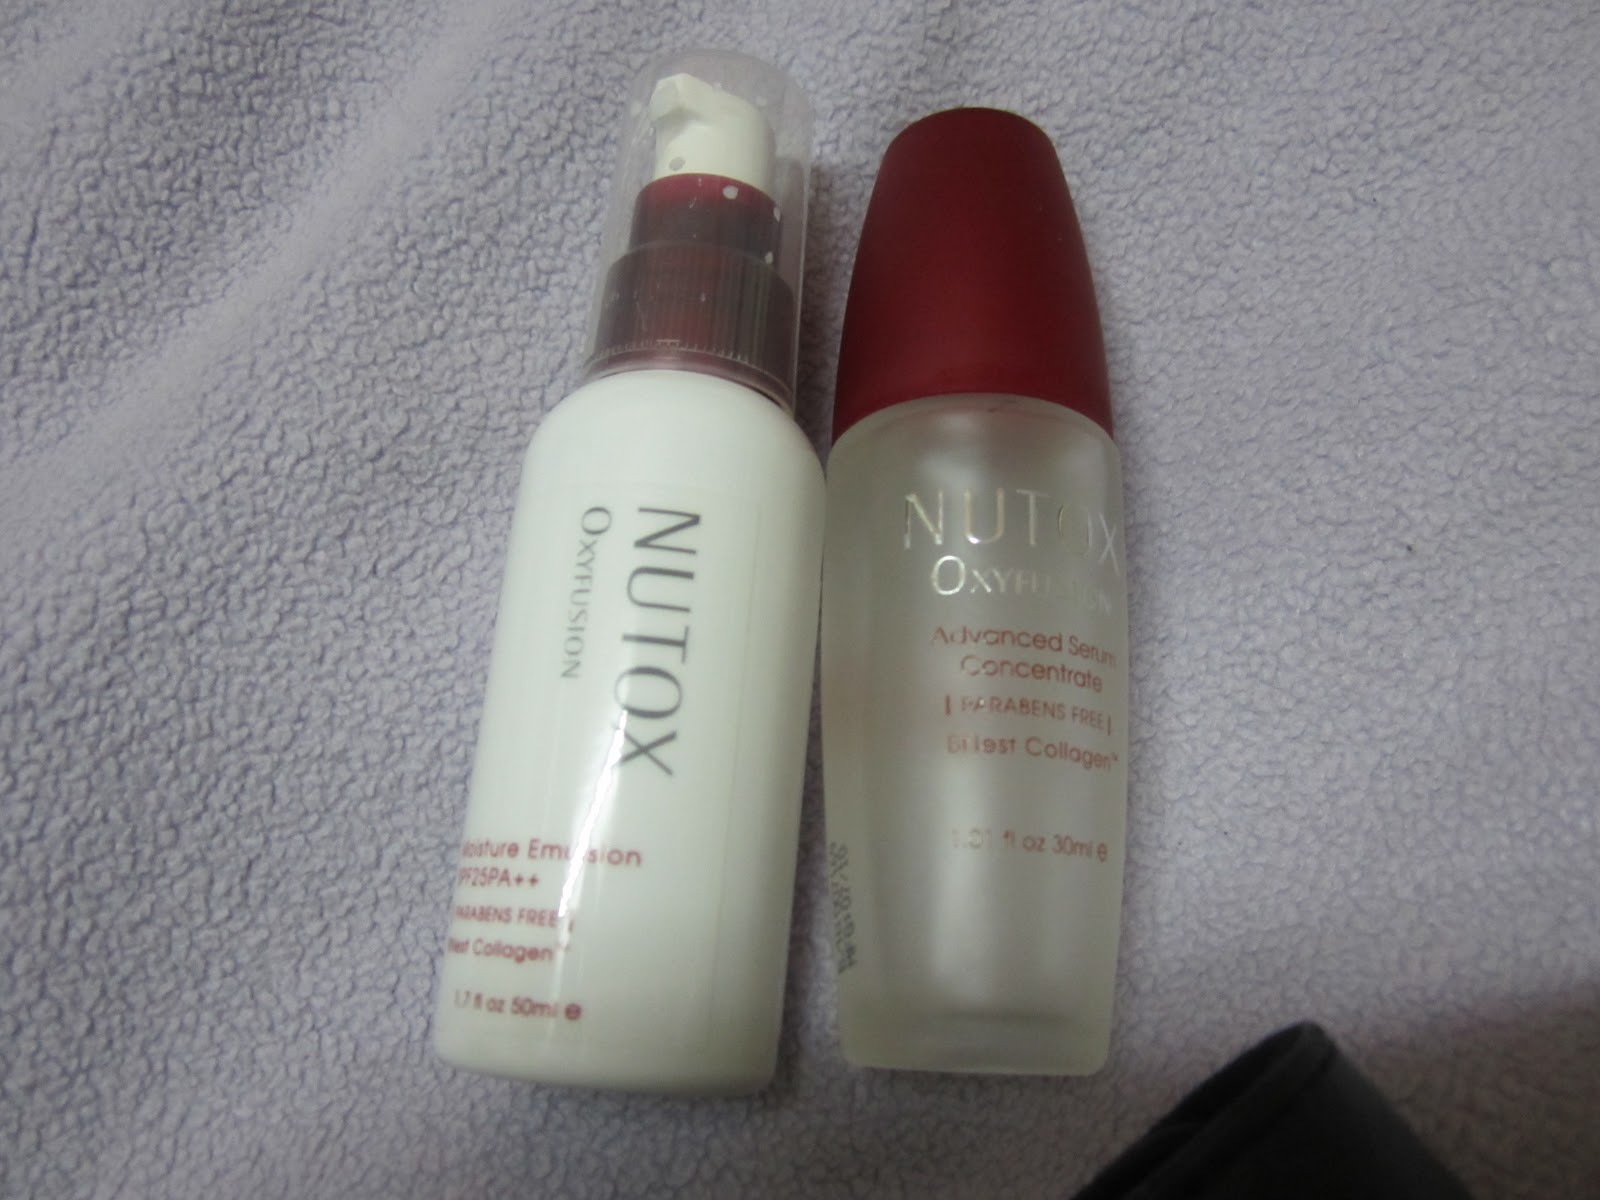 My Skincare (Nutox Oxyfusion) Review